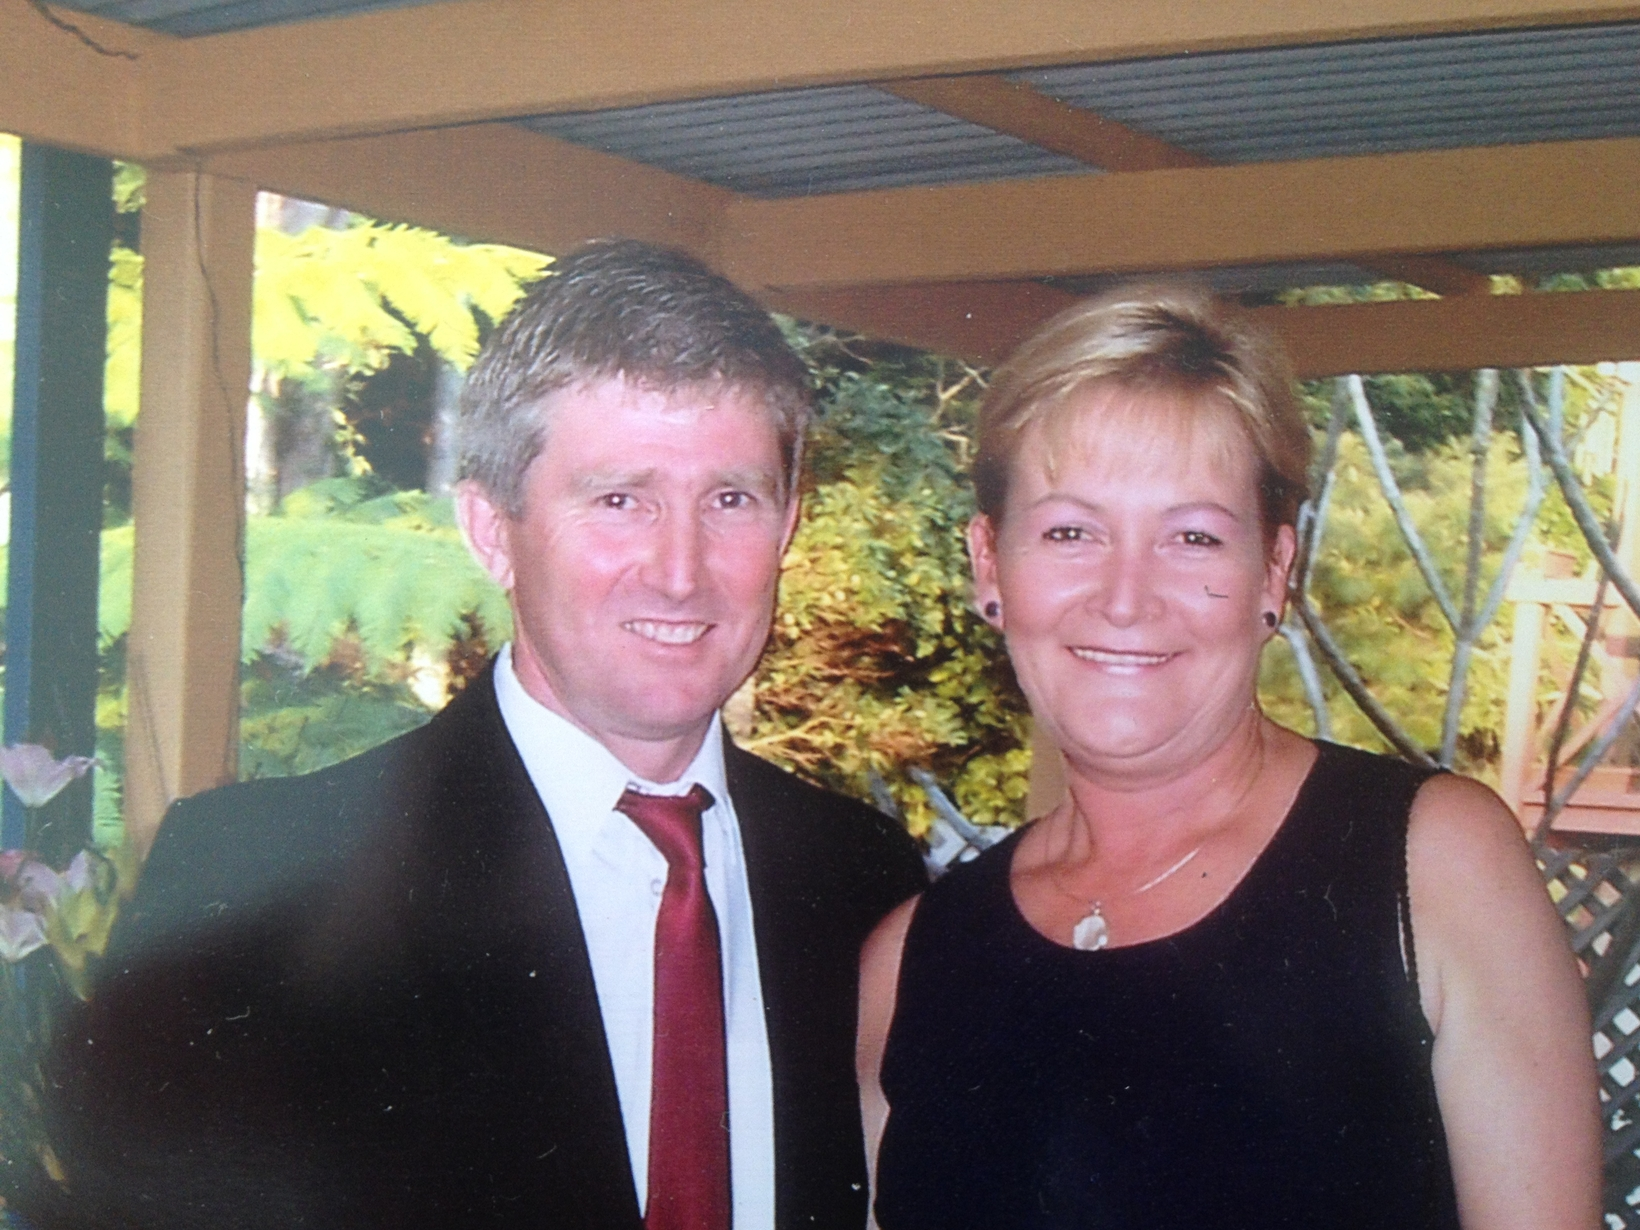 Bev & Adrian from Gloucester, New South Wales, Australia